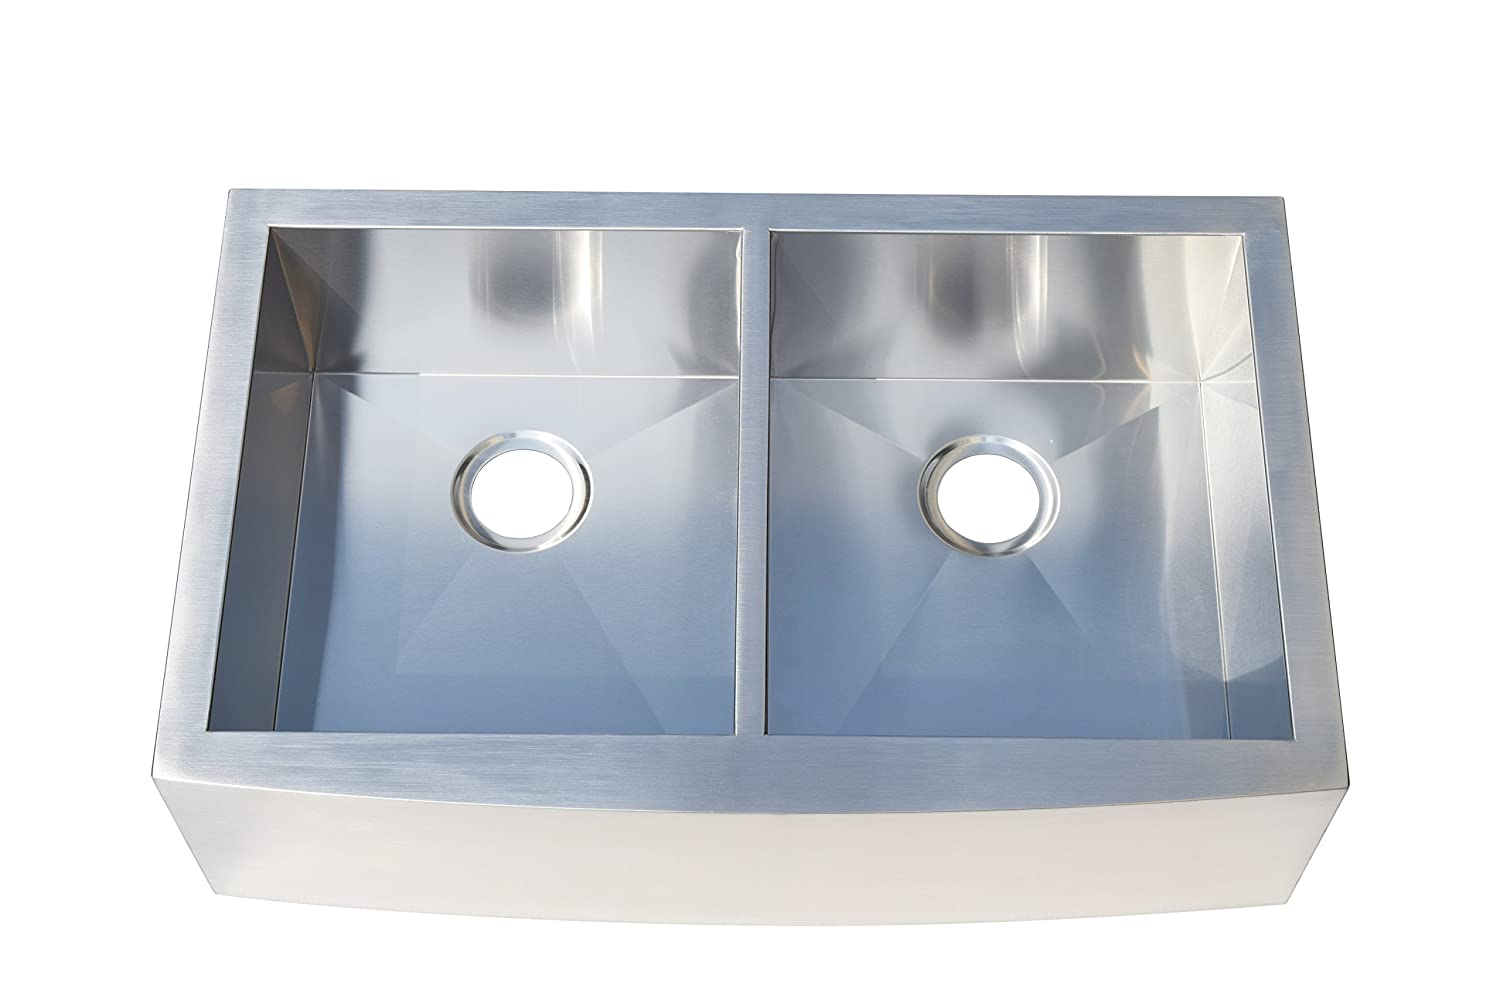 Farmhouse Apron Front Stainless Steel 33 in. Double Basin Kitchen ...